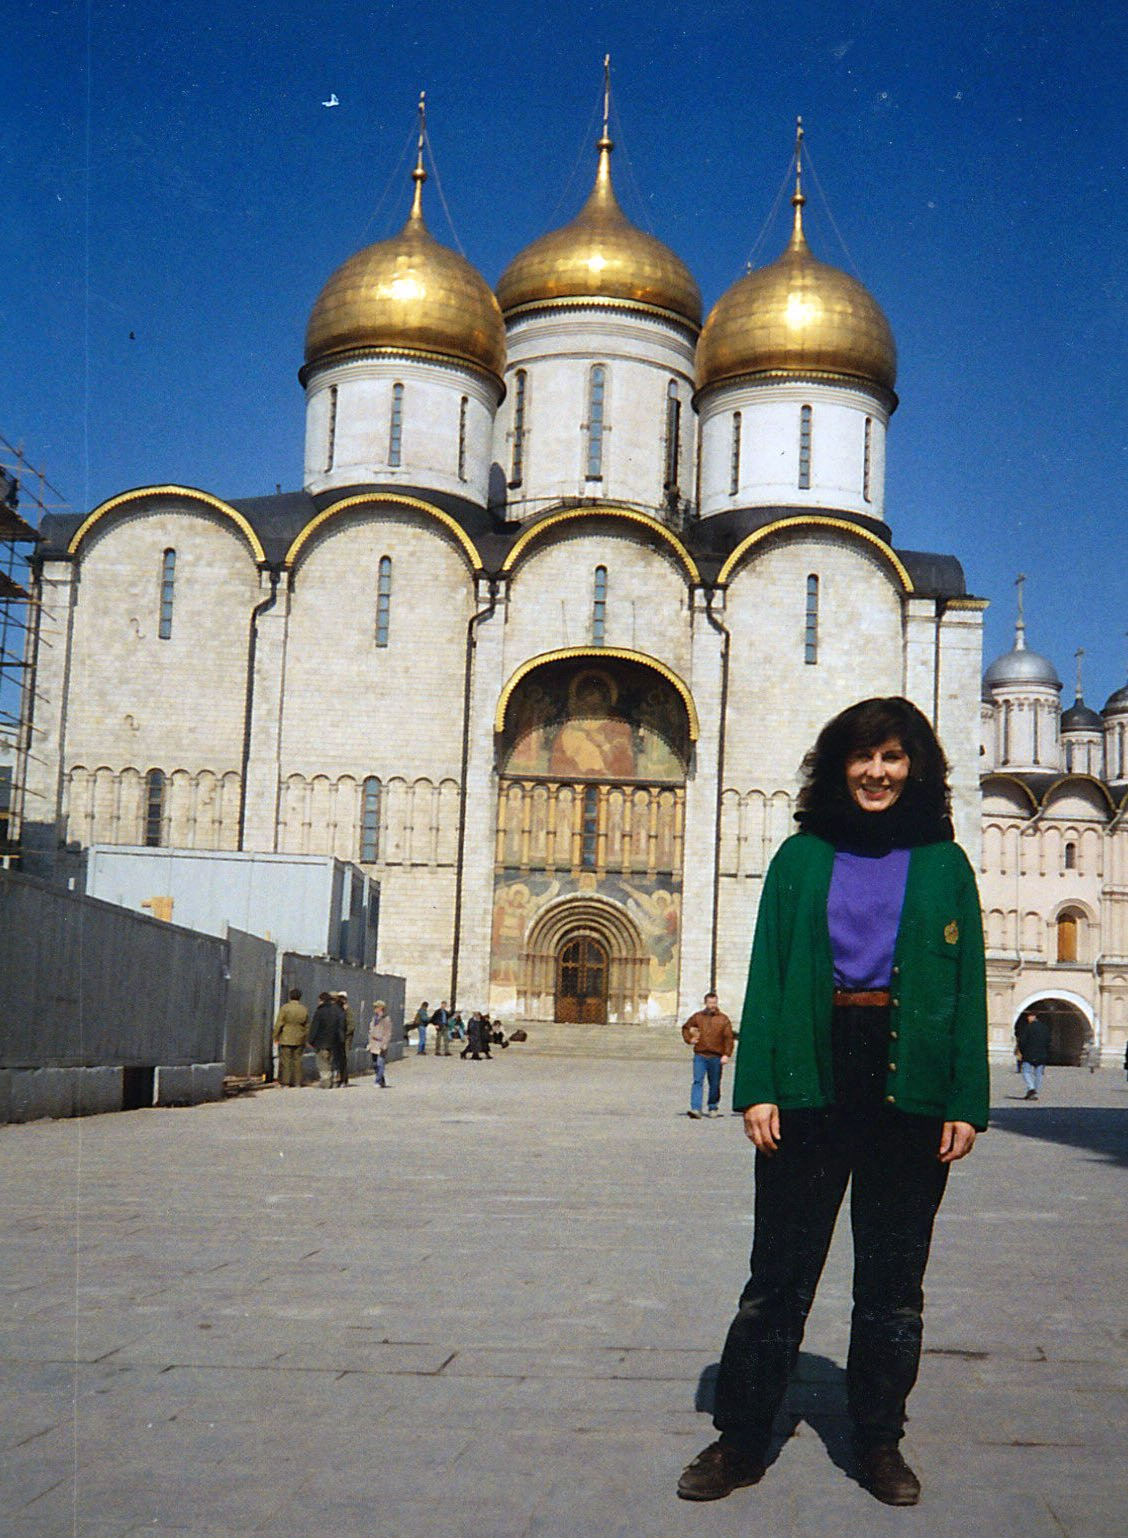 One of my favorite places, the Kremlin in Moscow, Russia. This is from 1994, or so. Photo credit: Helen Holter